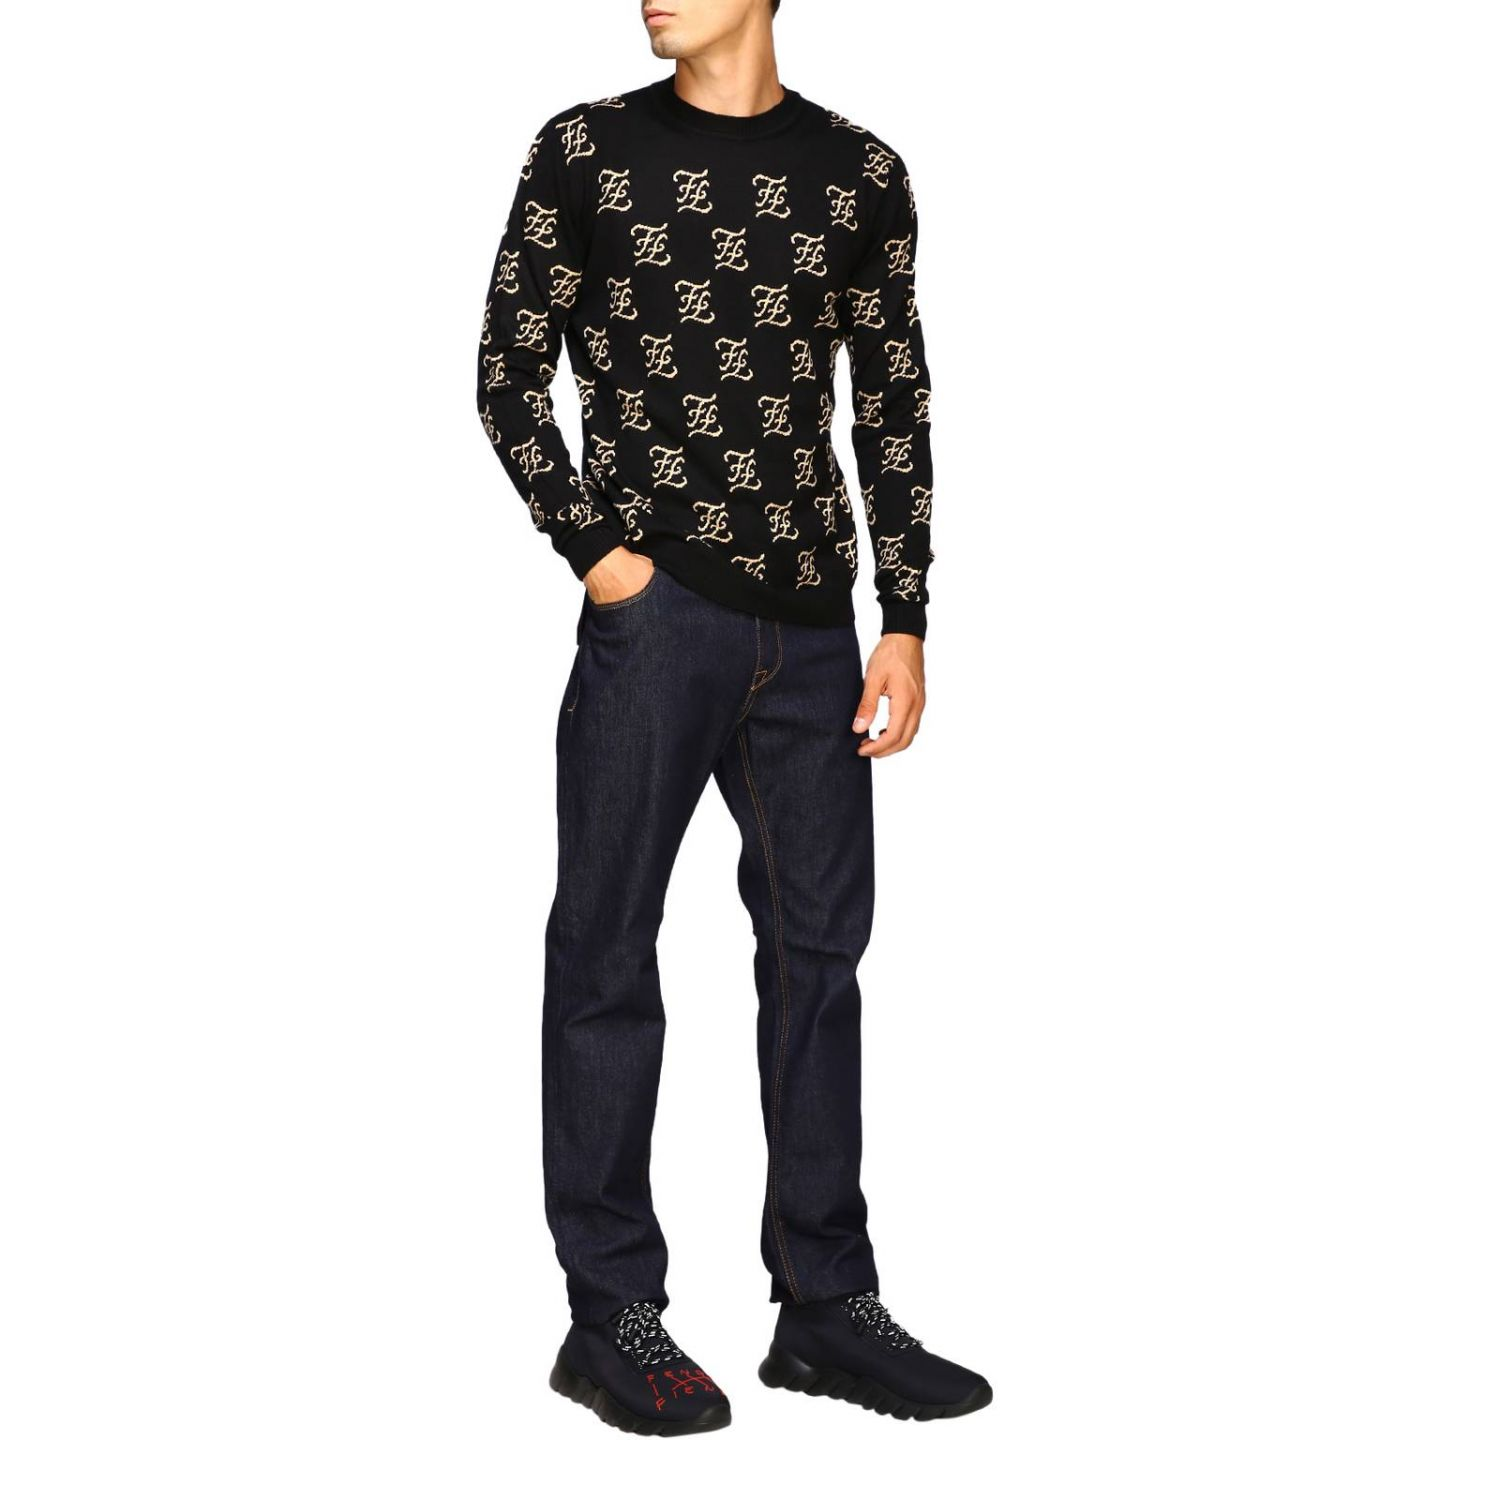 Sweater men Fendi black 2